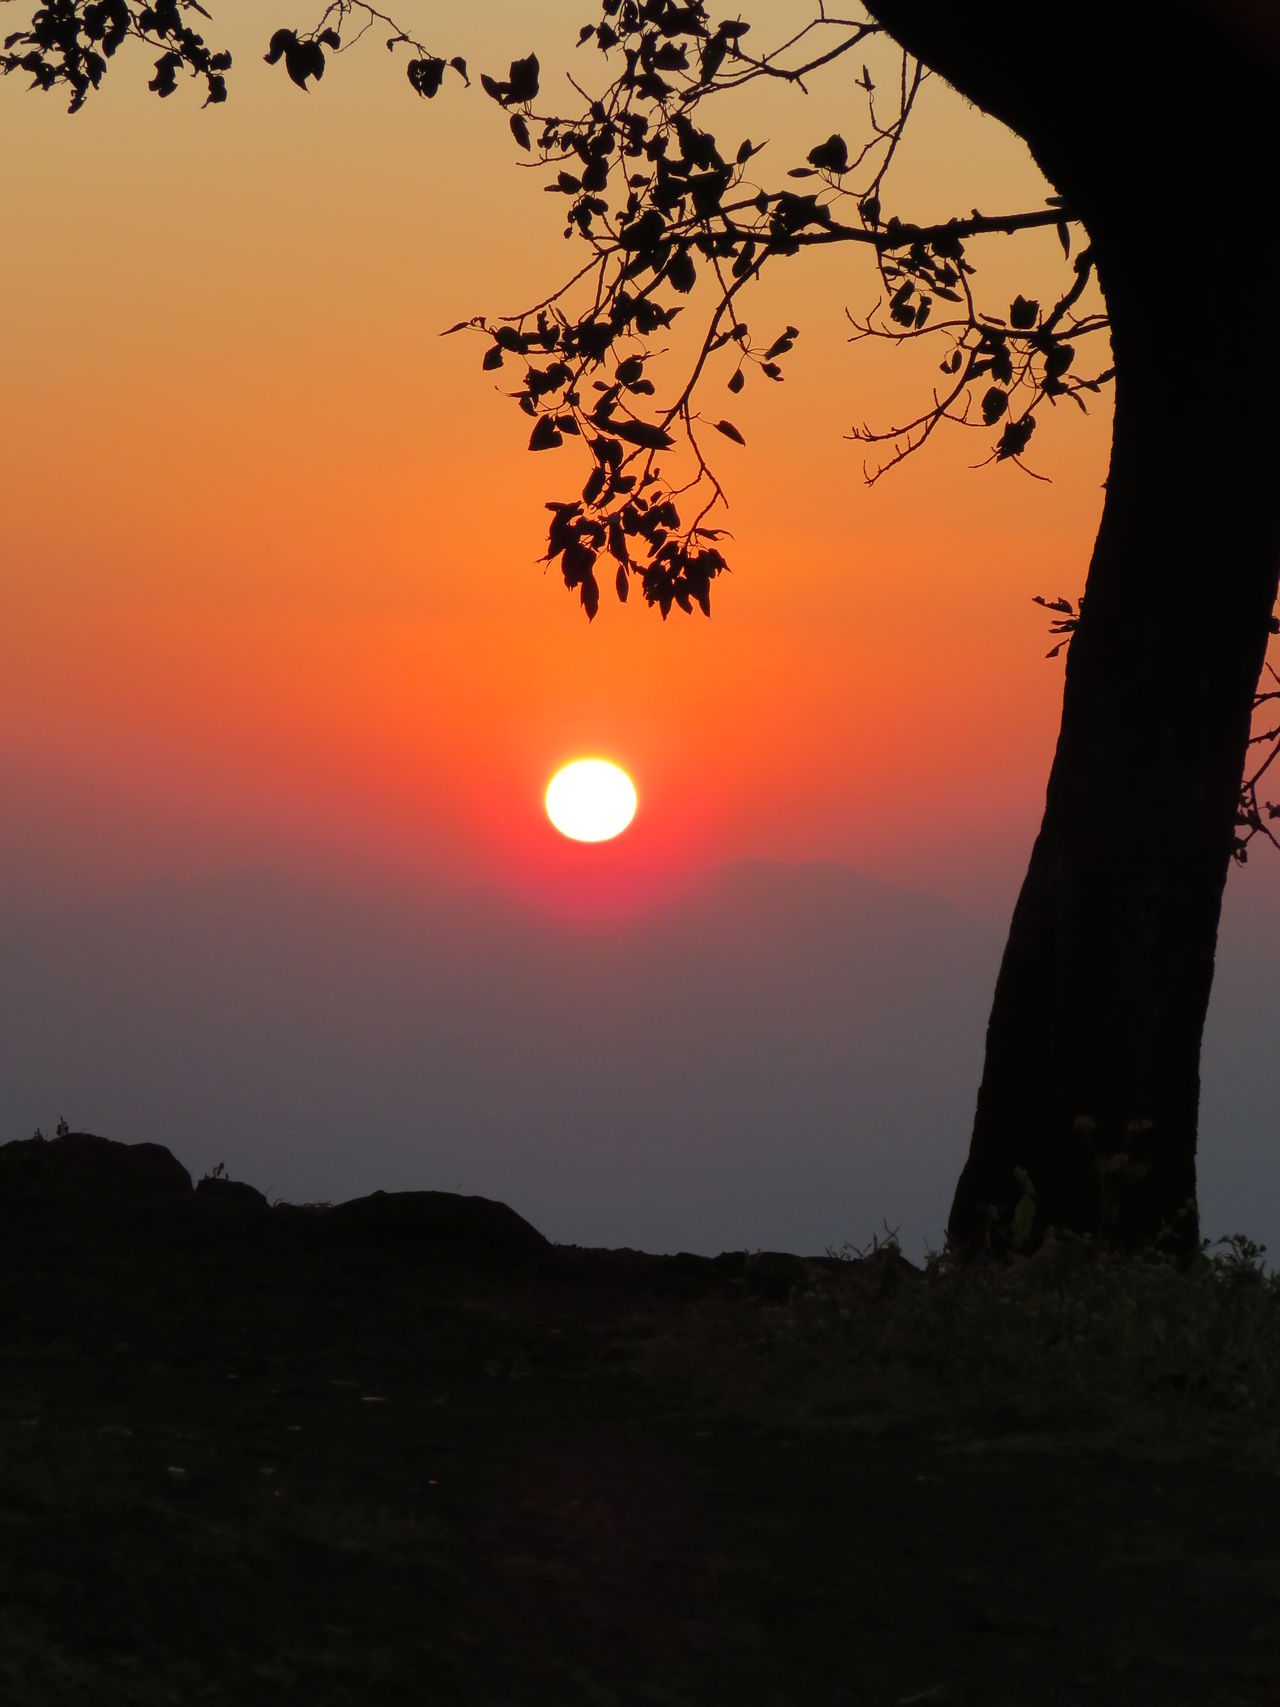 Sunrise Silhouette Sun Sunrise Sunlight And Shade Silhouette Nature Photography Natural Beauty Naturelovers Nature Colors Orange Sky And Sun Tree Silhouette EyeEmNewHere